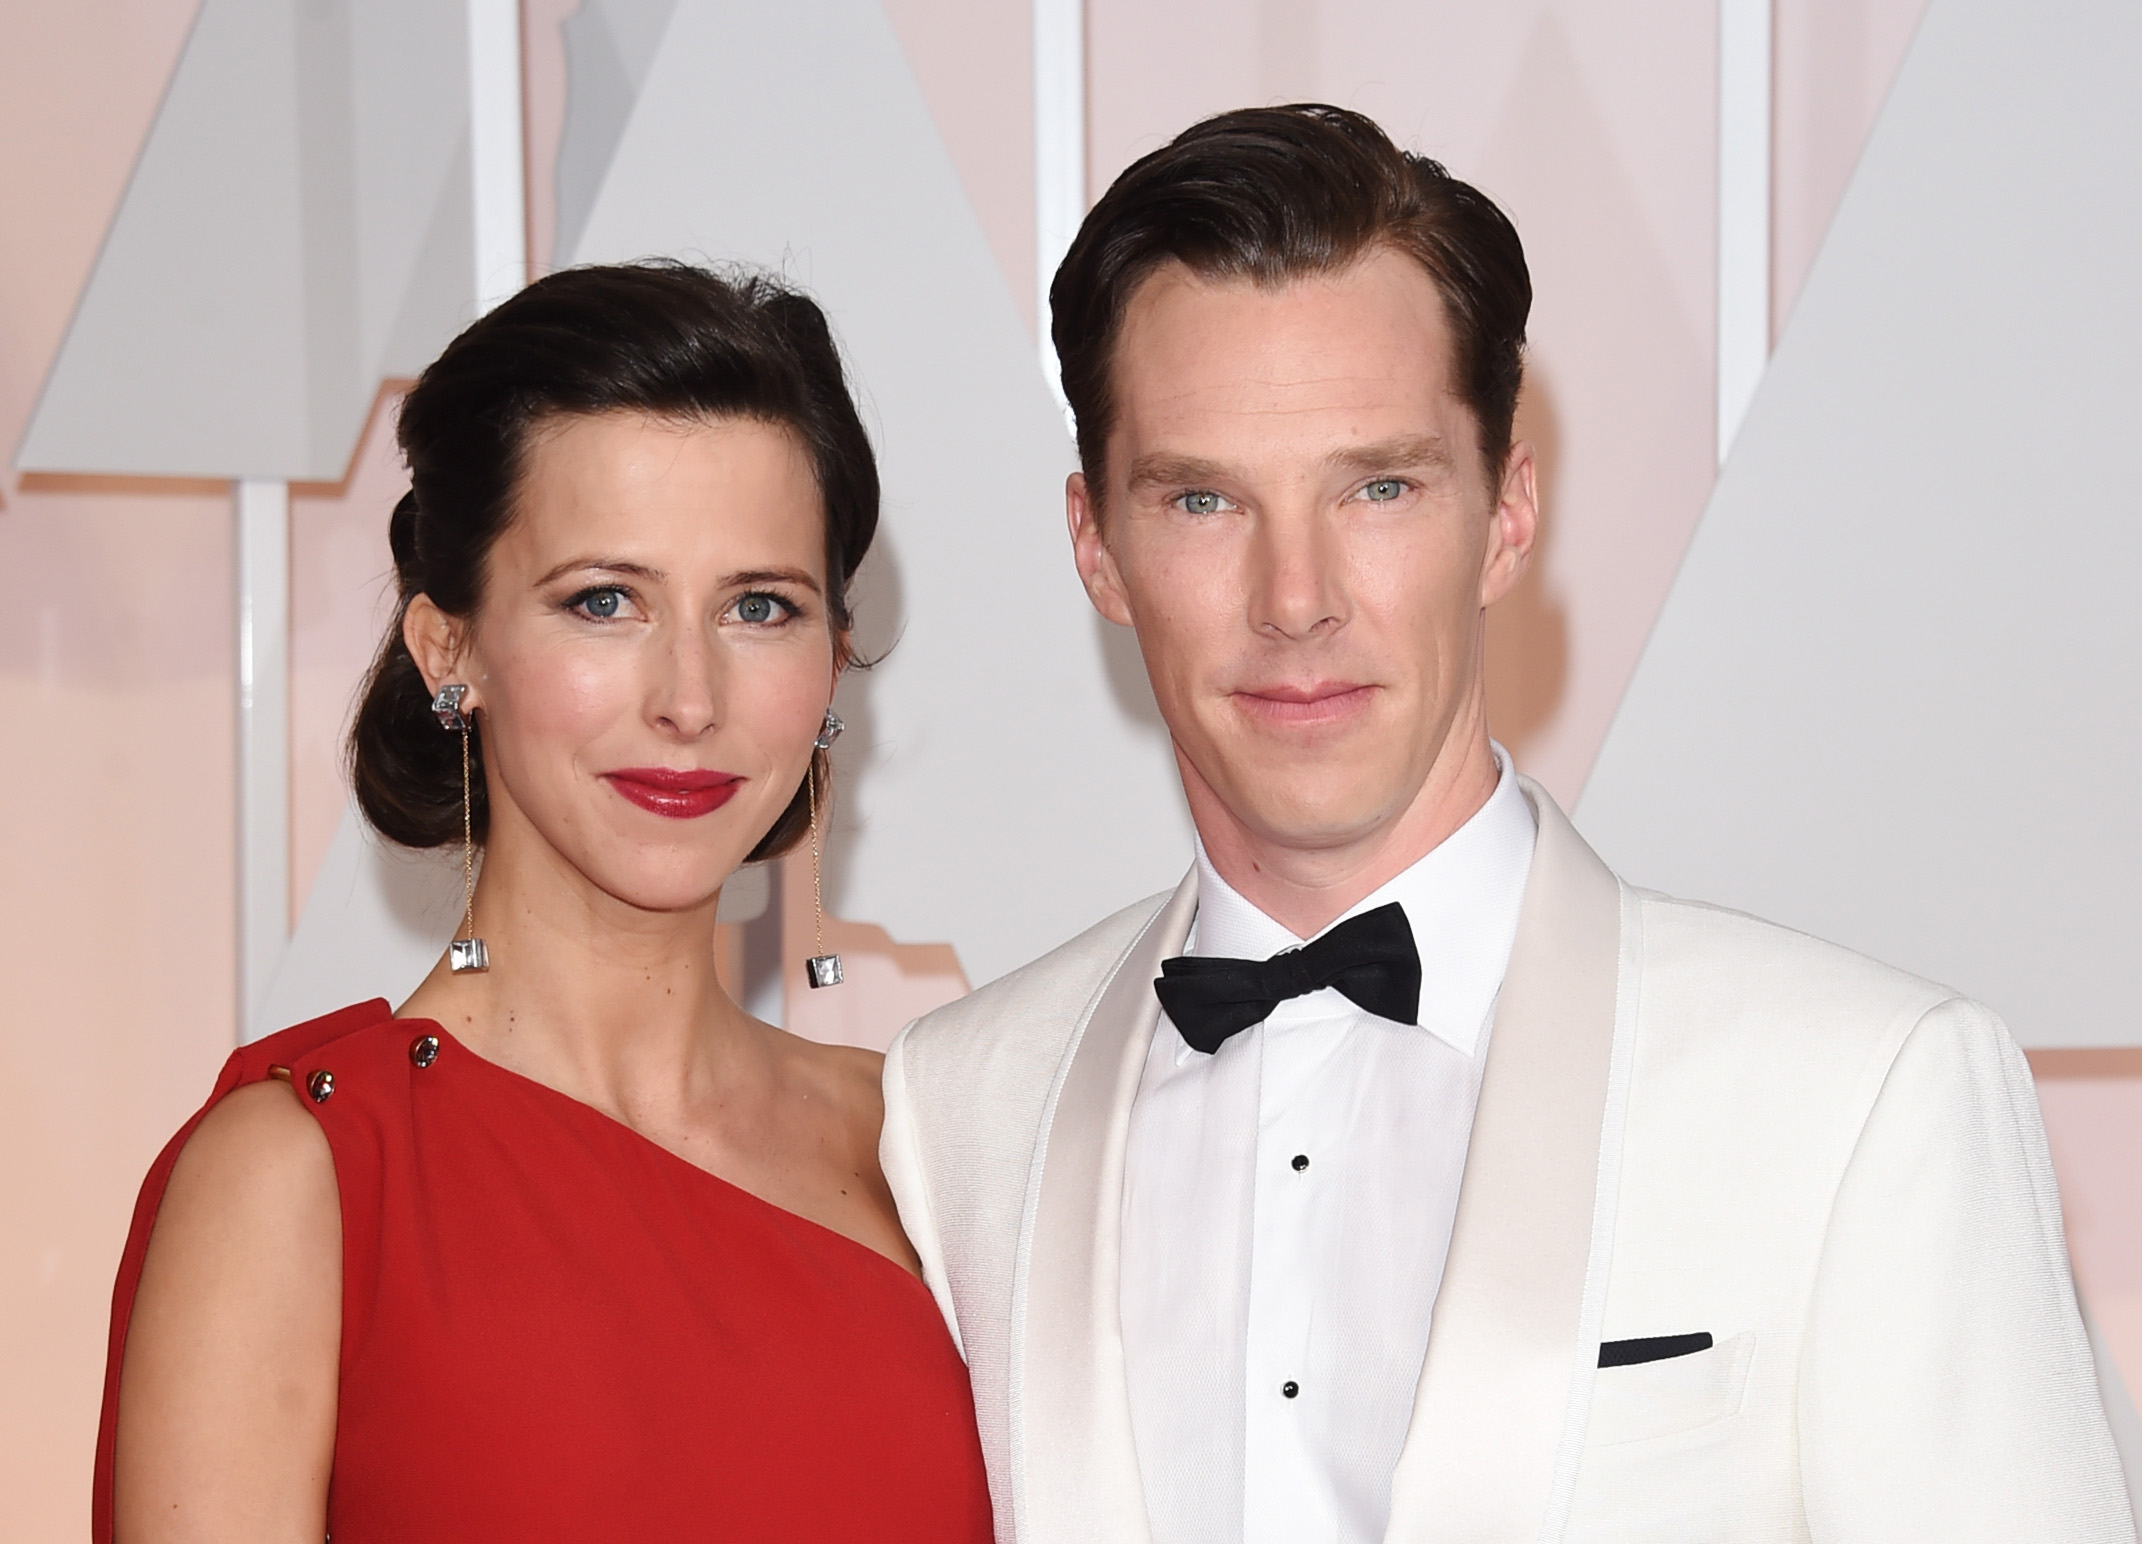 Actor Benedict Cumberbatch (R) and Sophie Hunter attend the 87th Annual Academy Awards at Hollywood & Highland Center on February 22, 2015 in Hollywood, Calif.